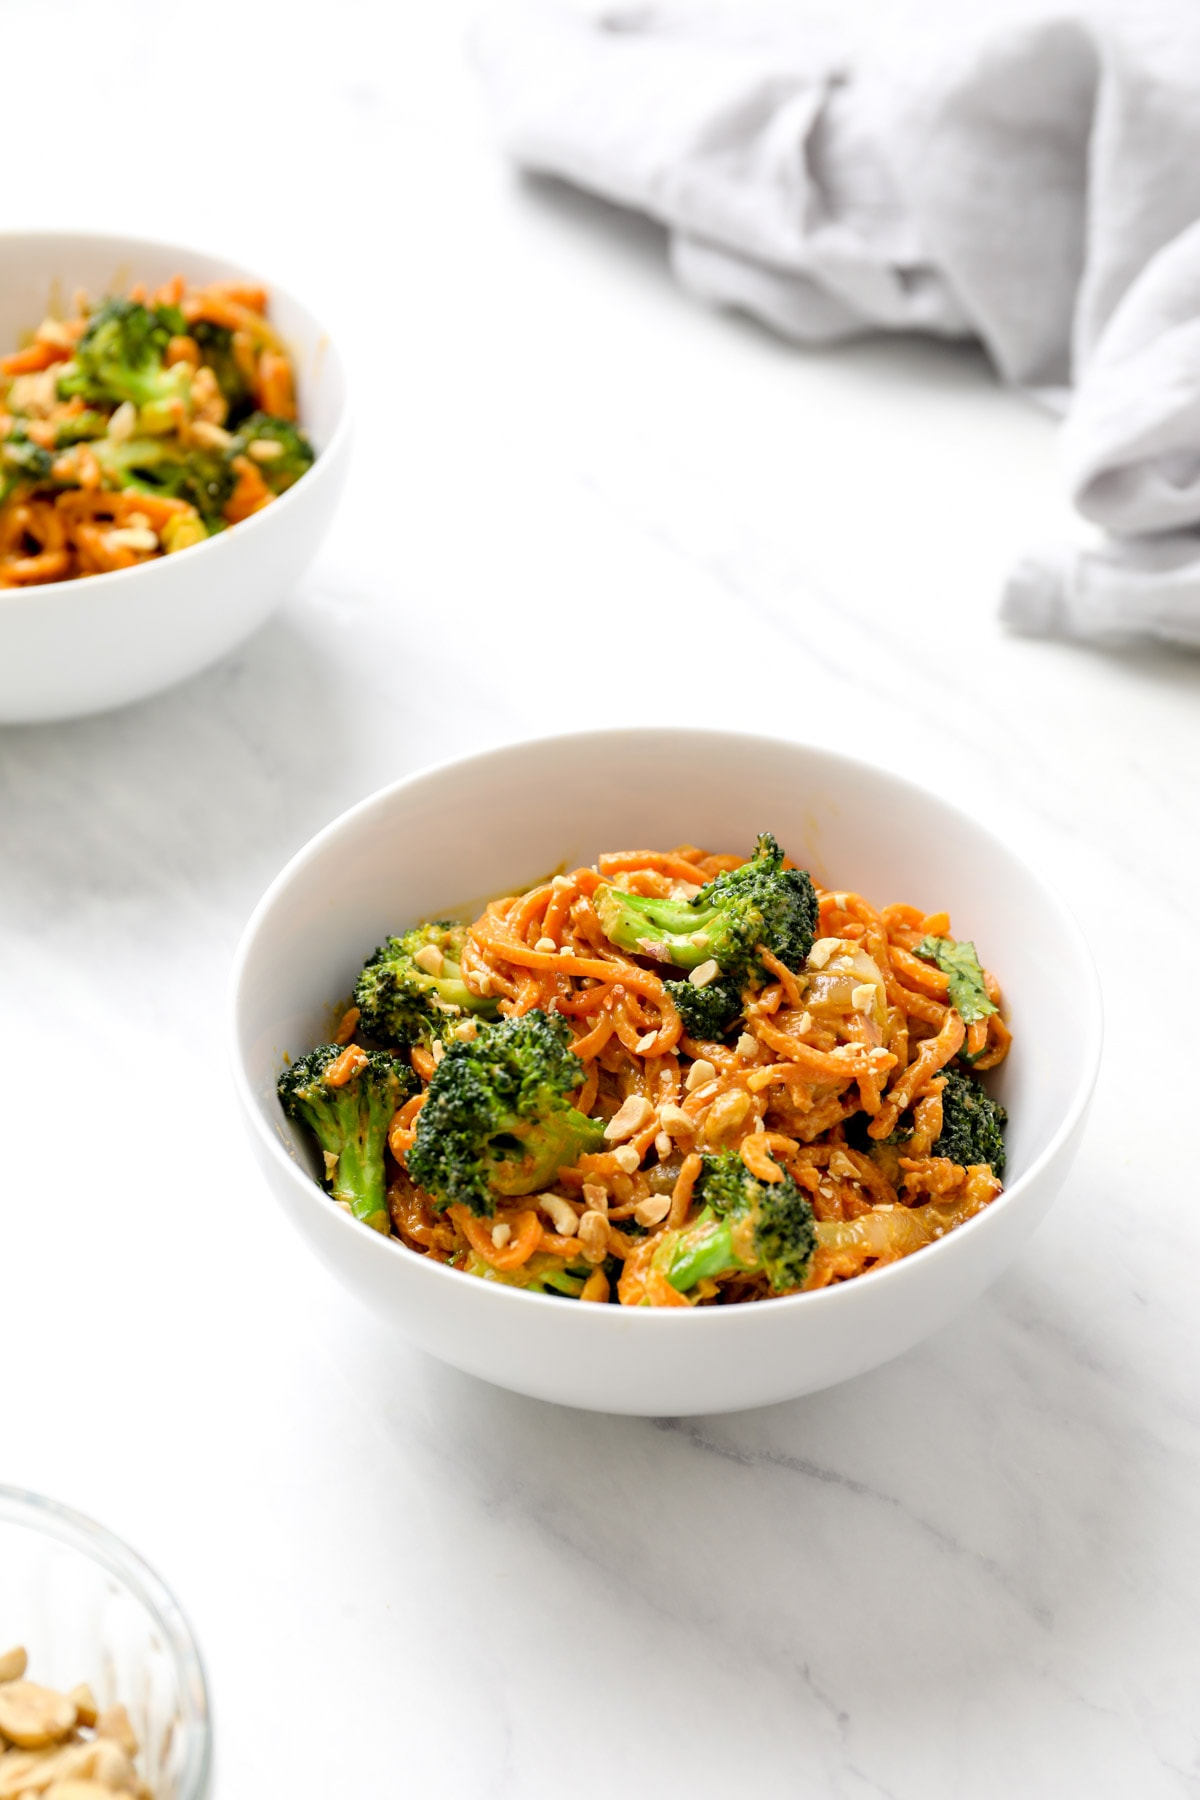 Two bowls of Peanut Sauce Sweet Potato Noodles with broccoli.